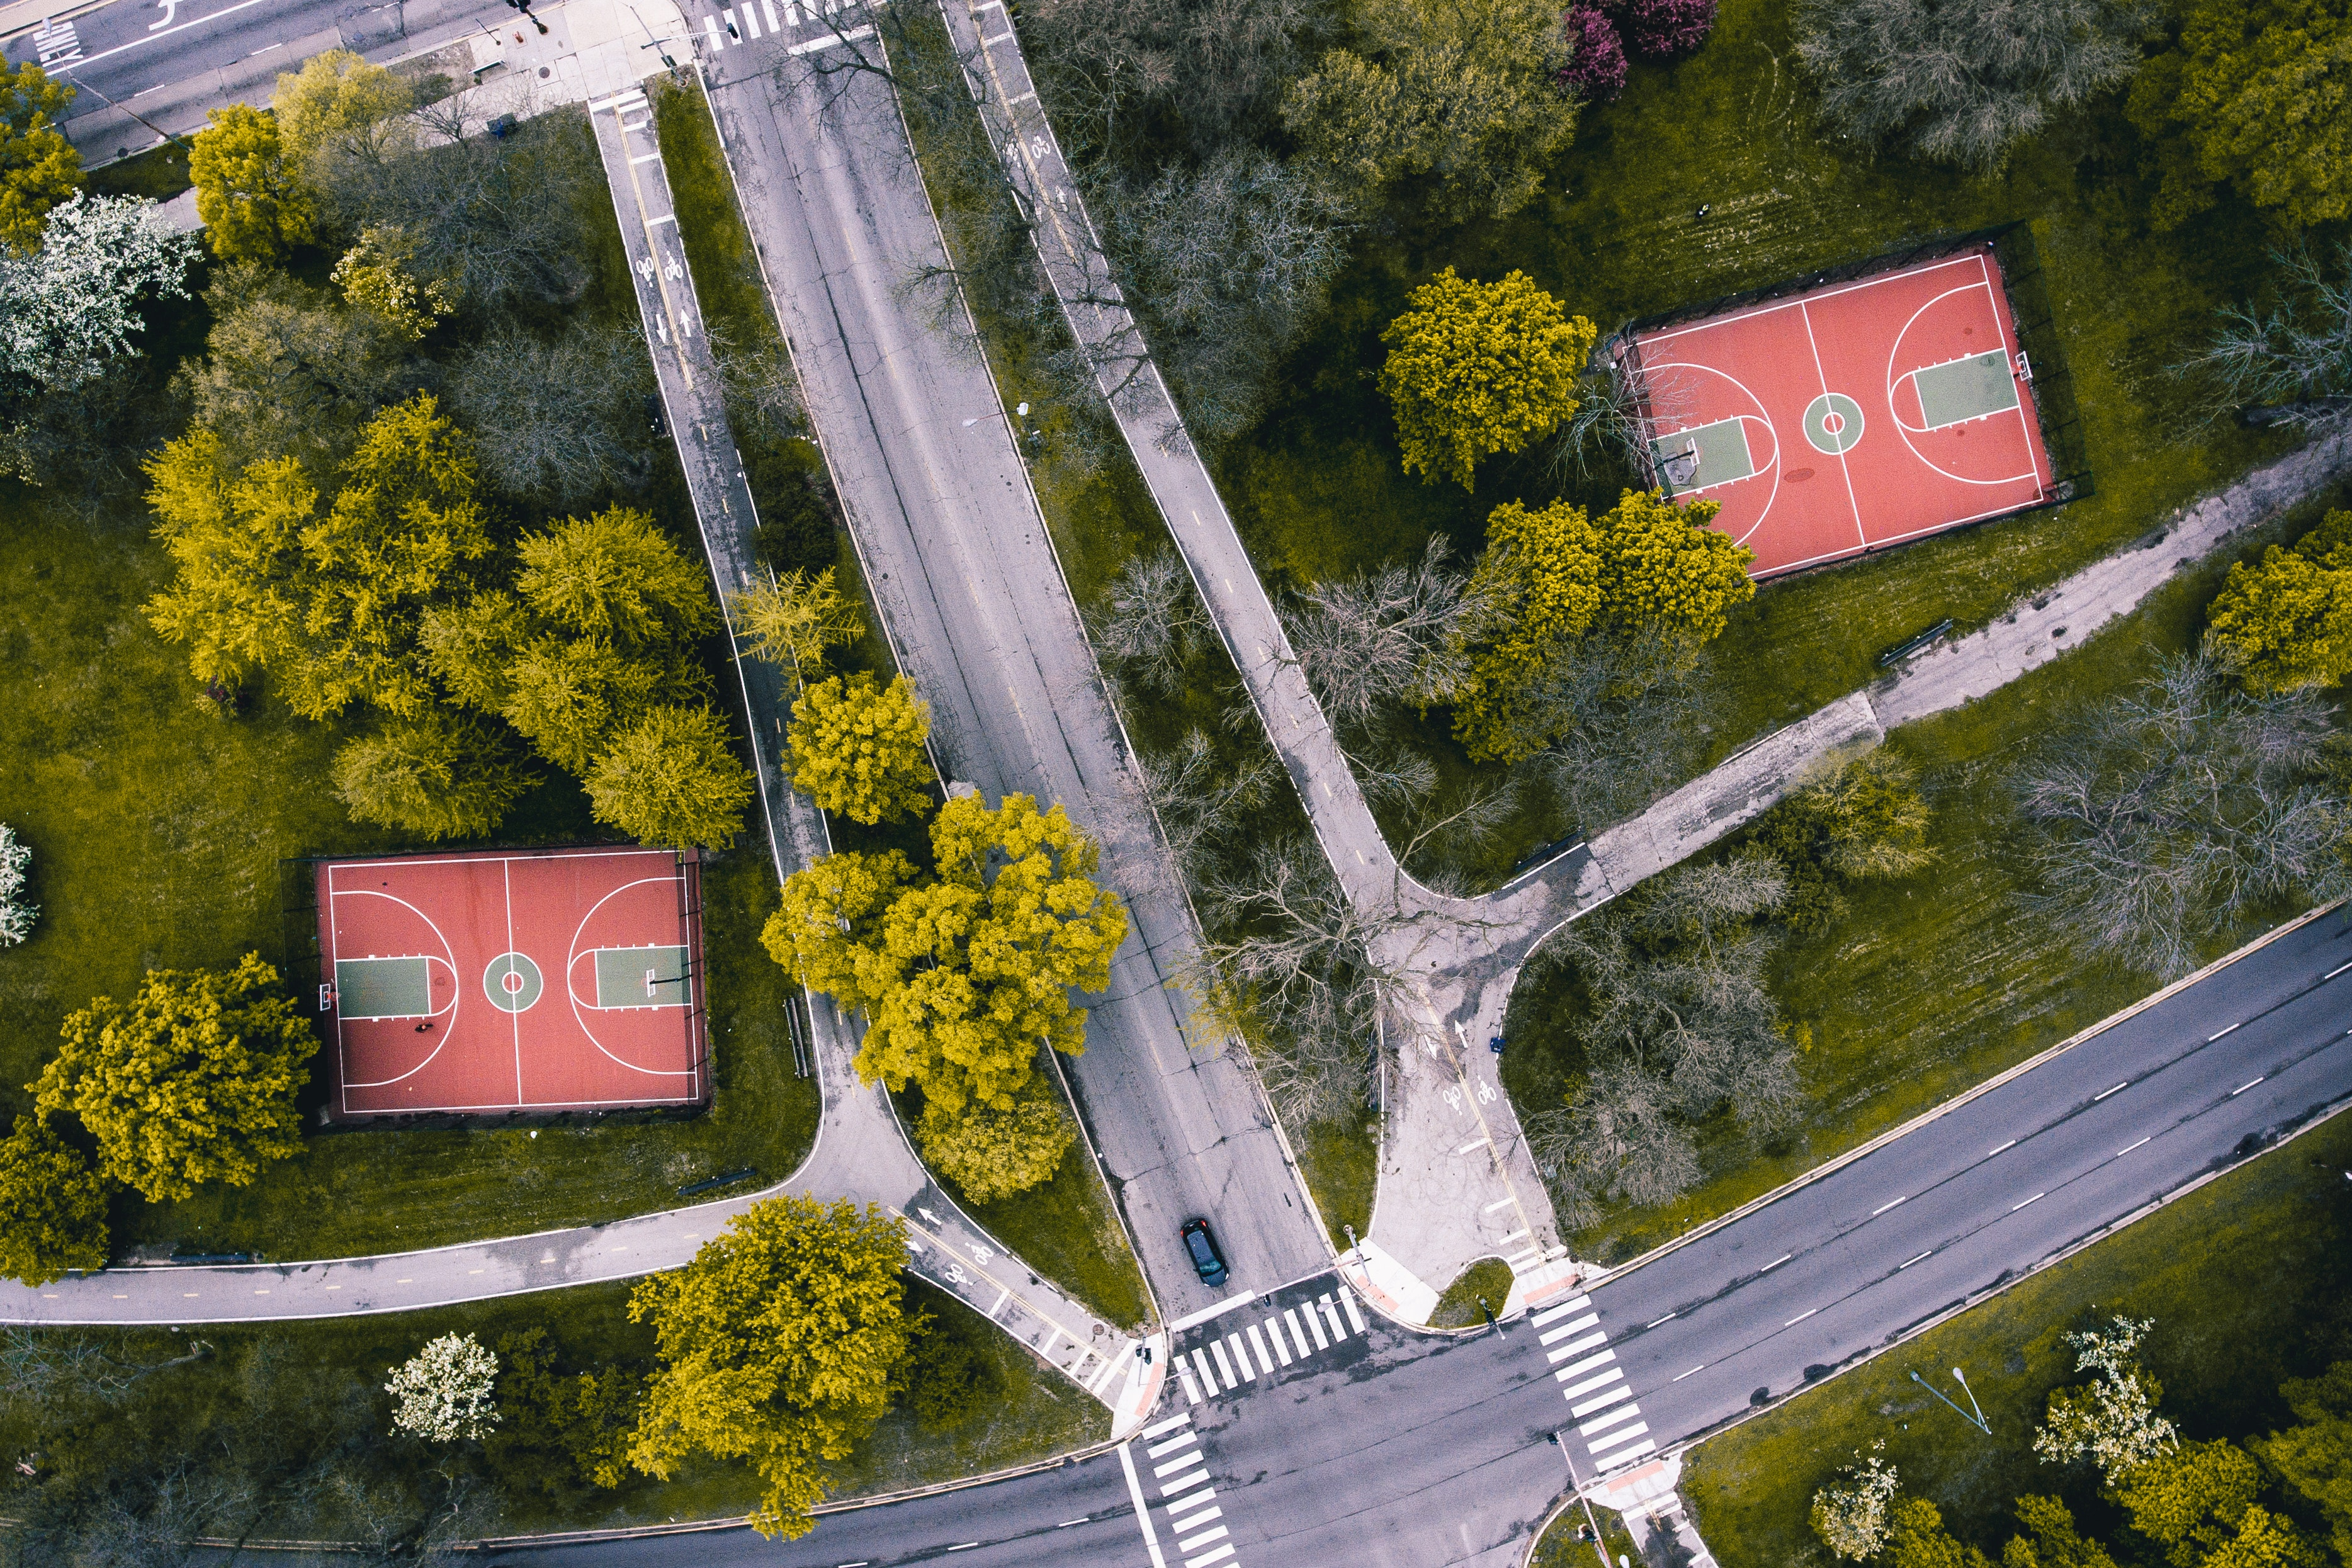 Aerial photo of two red basketball courts